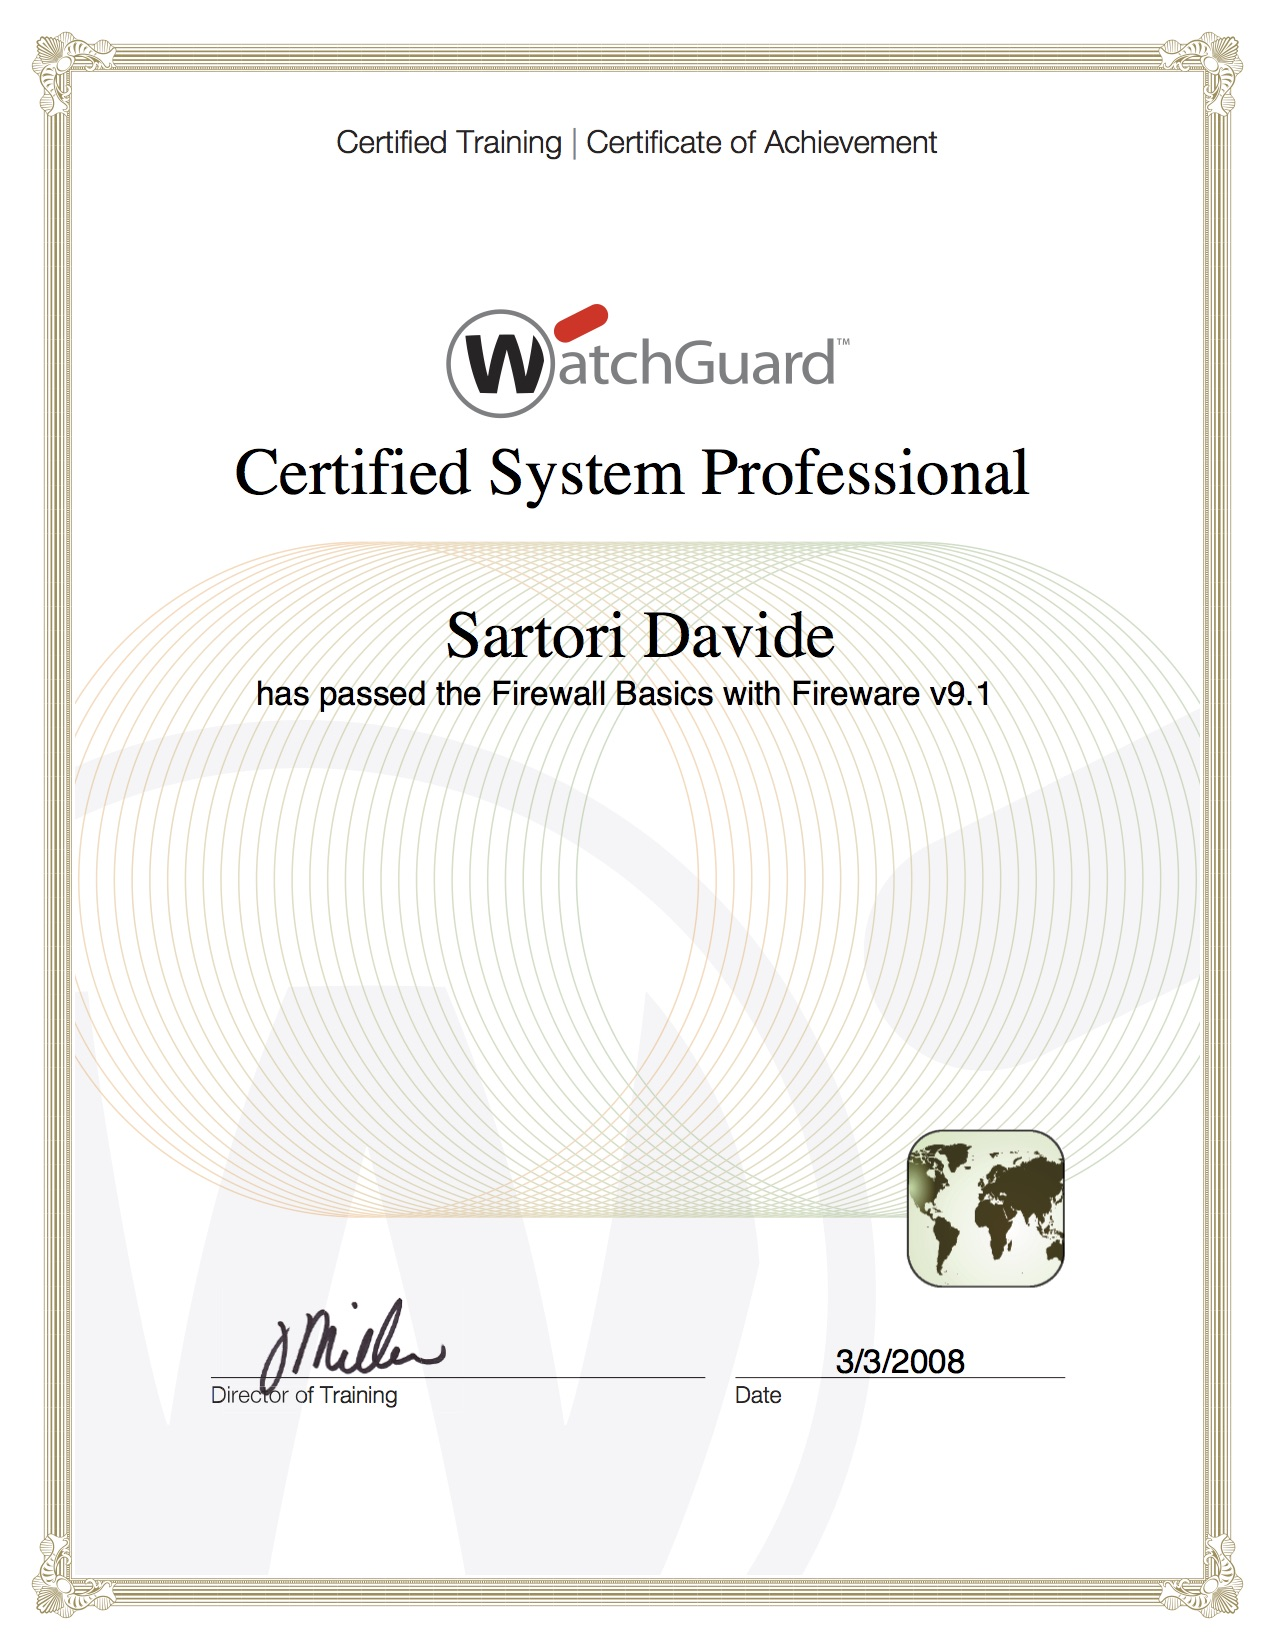 WathGuard Certified System Professional